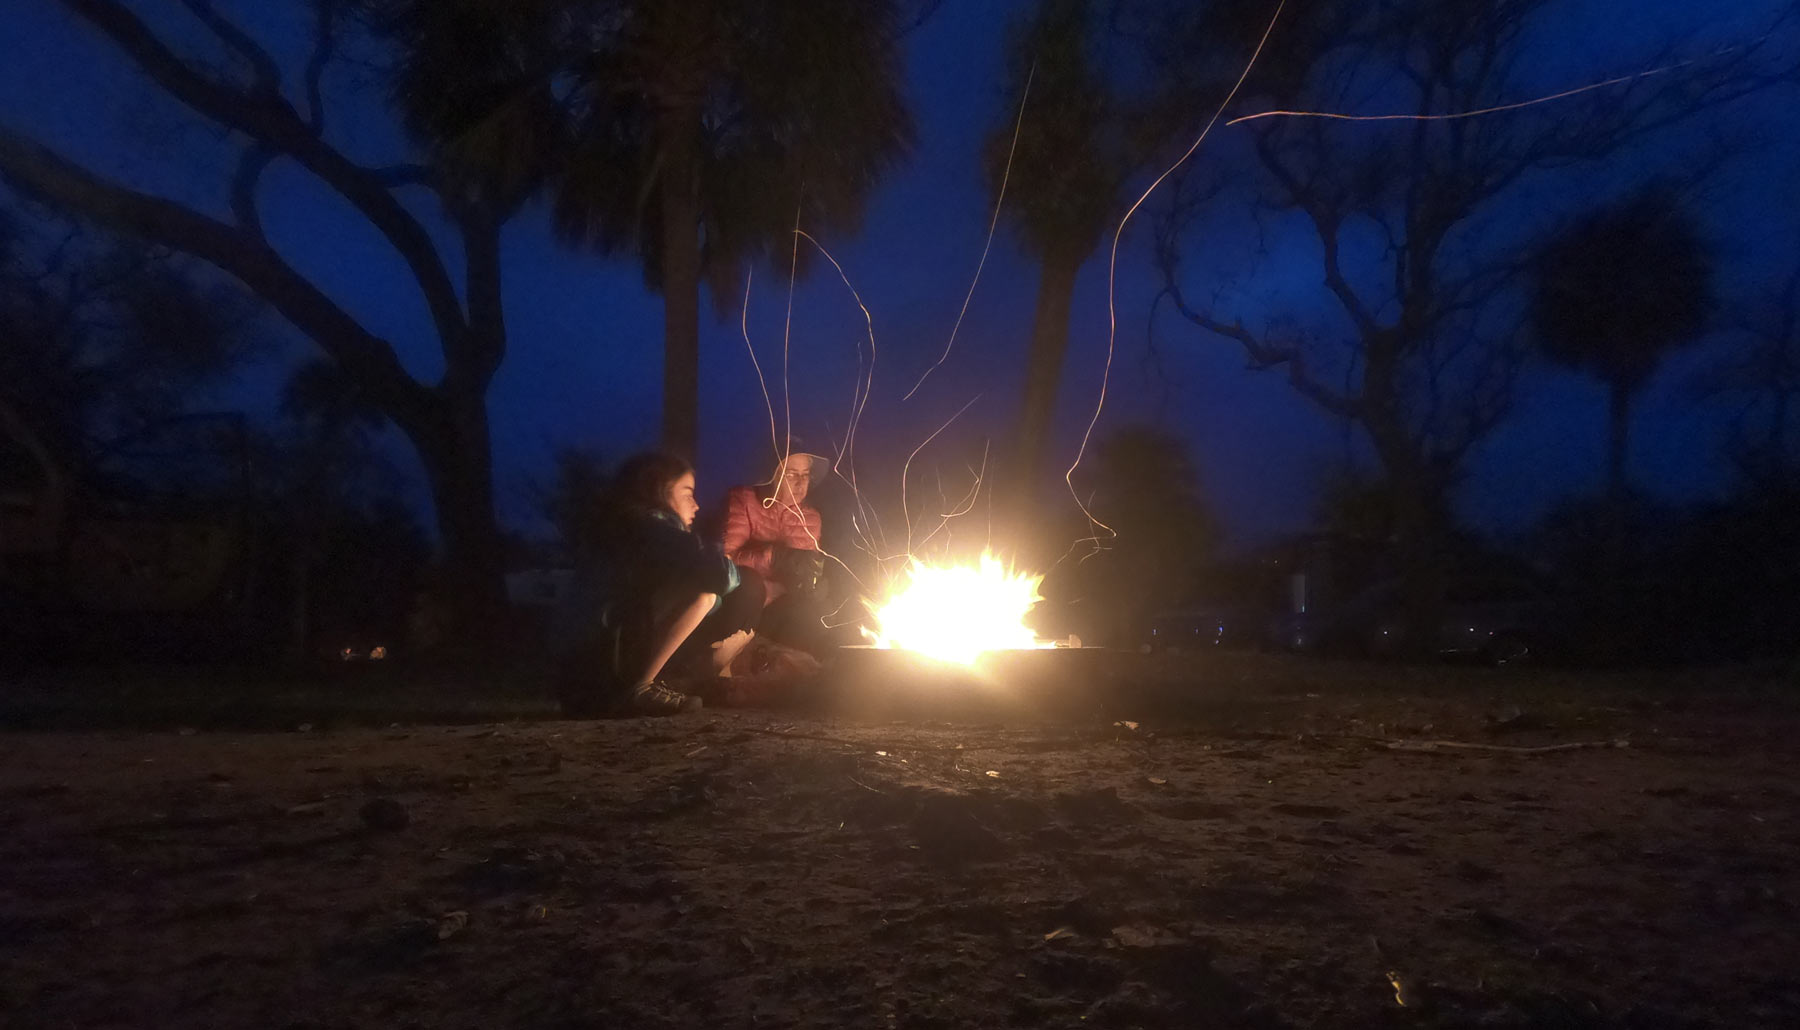 Family gathered around glowing campfire at night